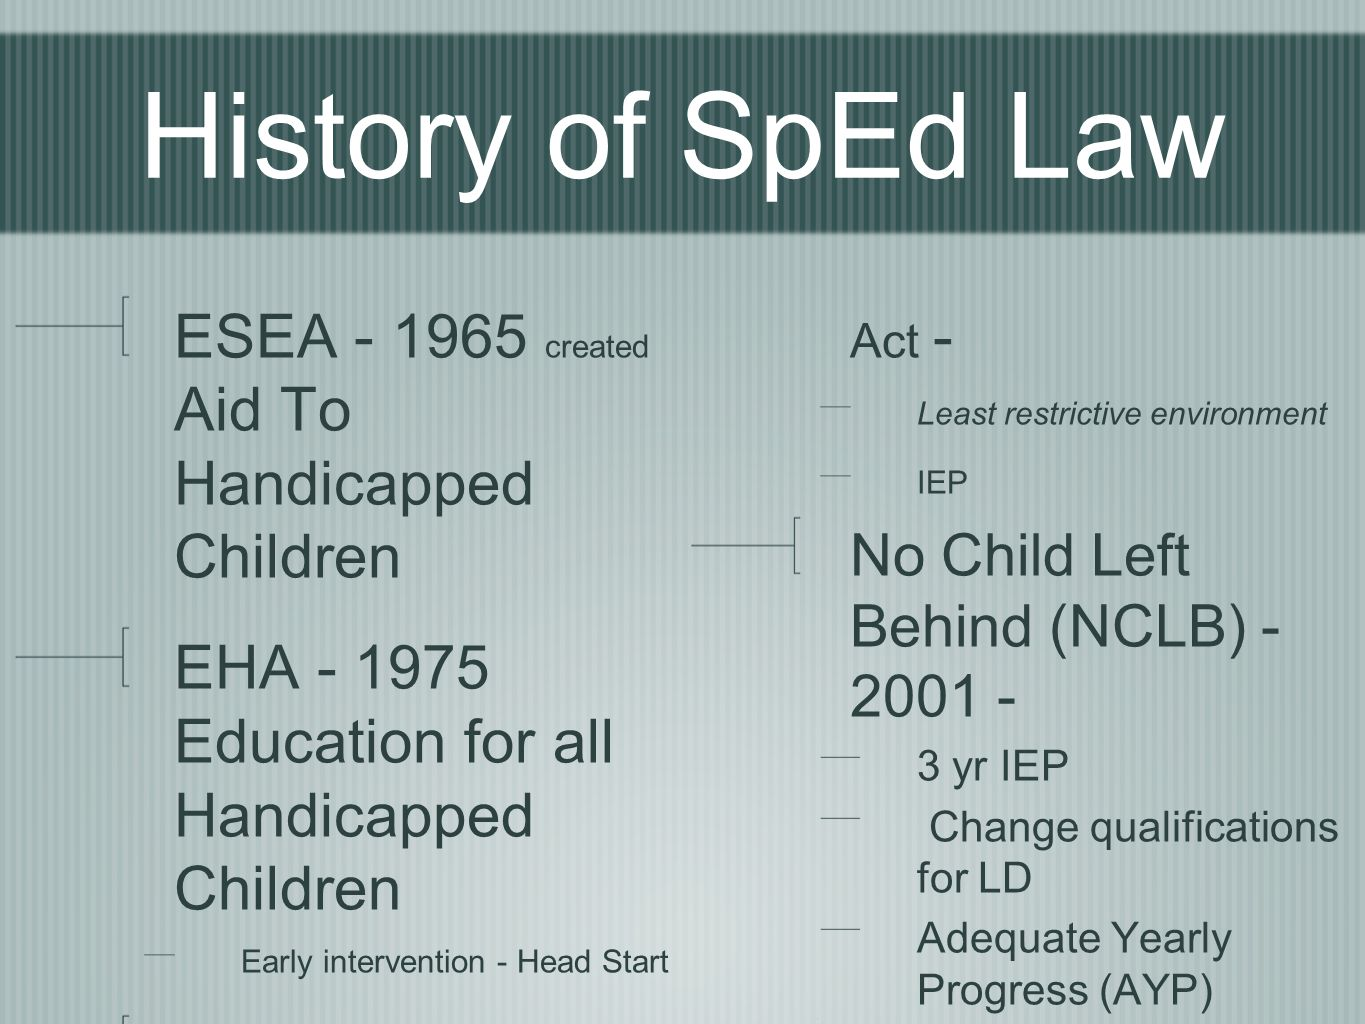 History of SpEd Law ESEA created Aid To Handicapped Children EHA Education for all Handicapped Children Early intervention - Head Start IDEA Individuals with Disabilities Education Act - Least restrictive environment IEP No Child Left Behind (NCLB) yr IEP Change qualifications for LD Adequate Yearly Progress (AYP) Waiver now in place in WI